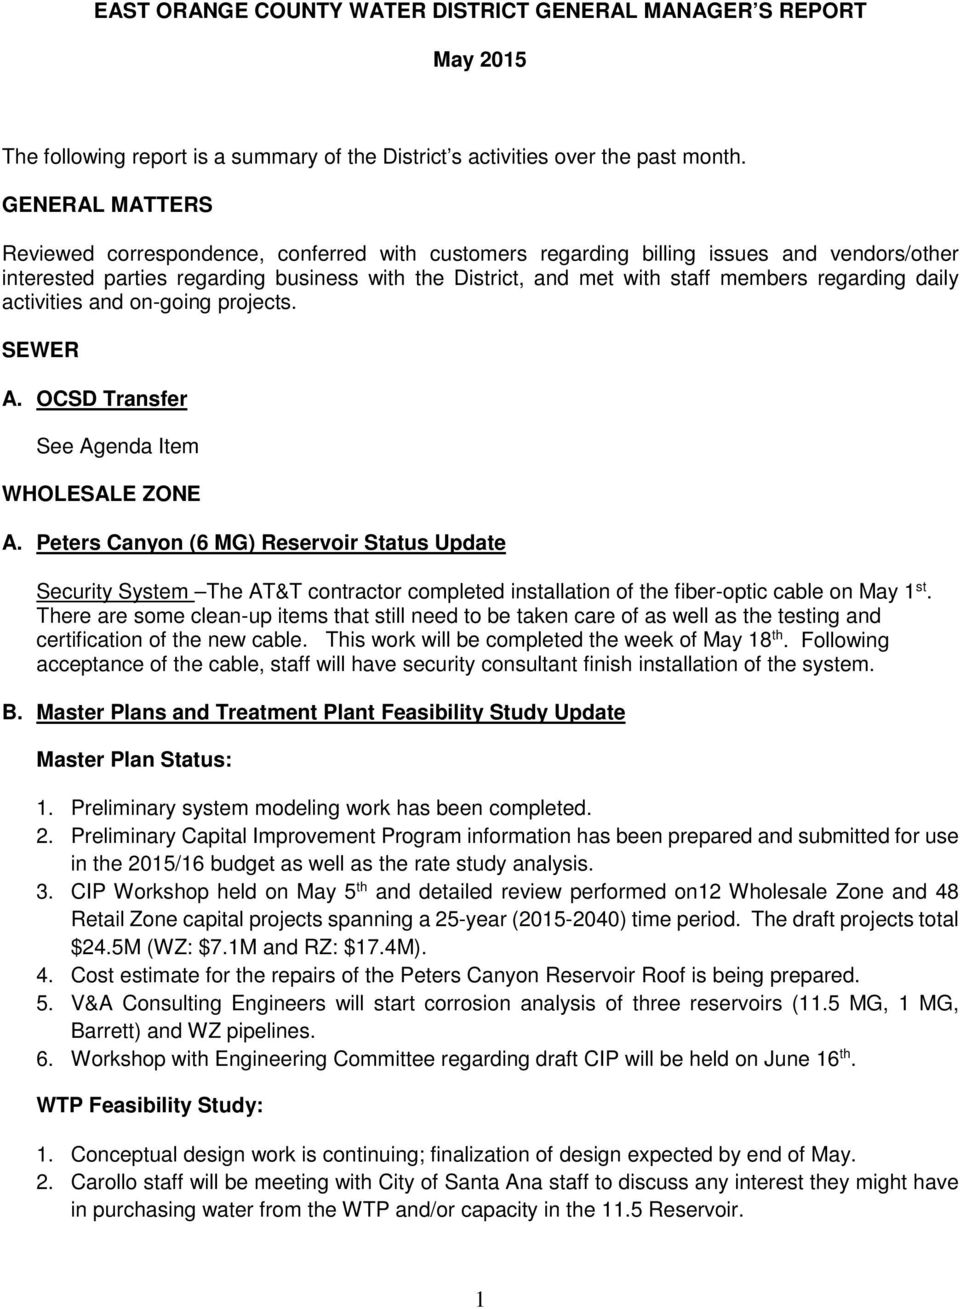 May 18 Board Of Directors East Orange County Water District 185 N 1218 Power King Tractor Wiring Diagram Regarding Daily Activities And On Going Projects Sewer A Ocsd Transfer See Agenda